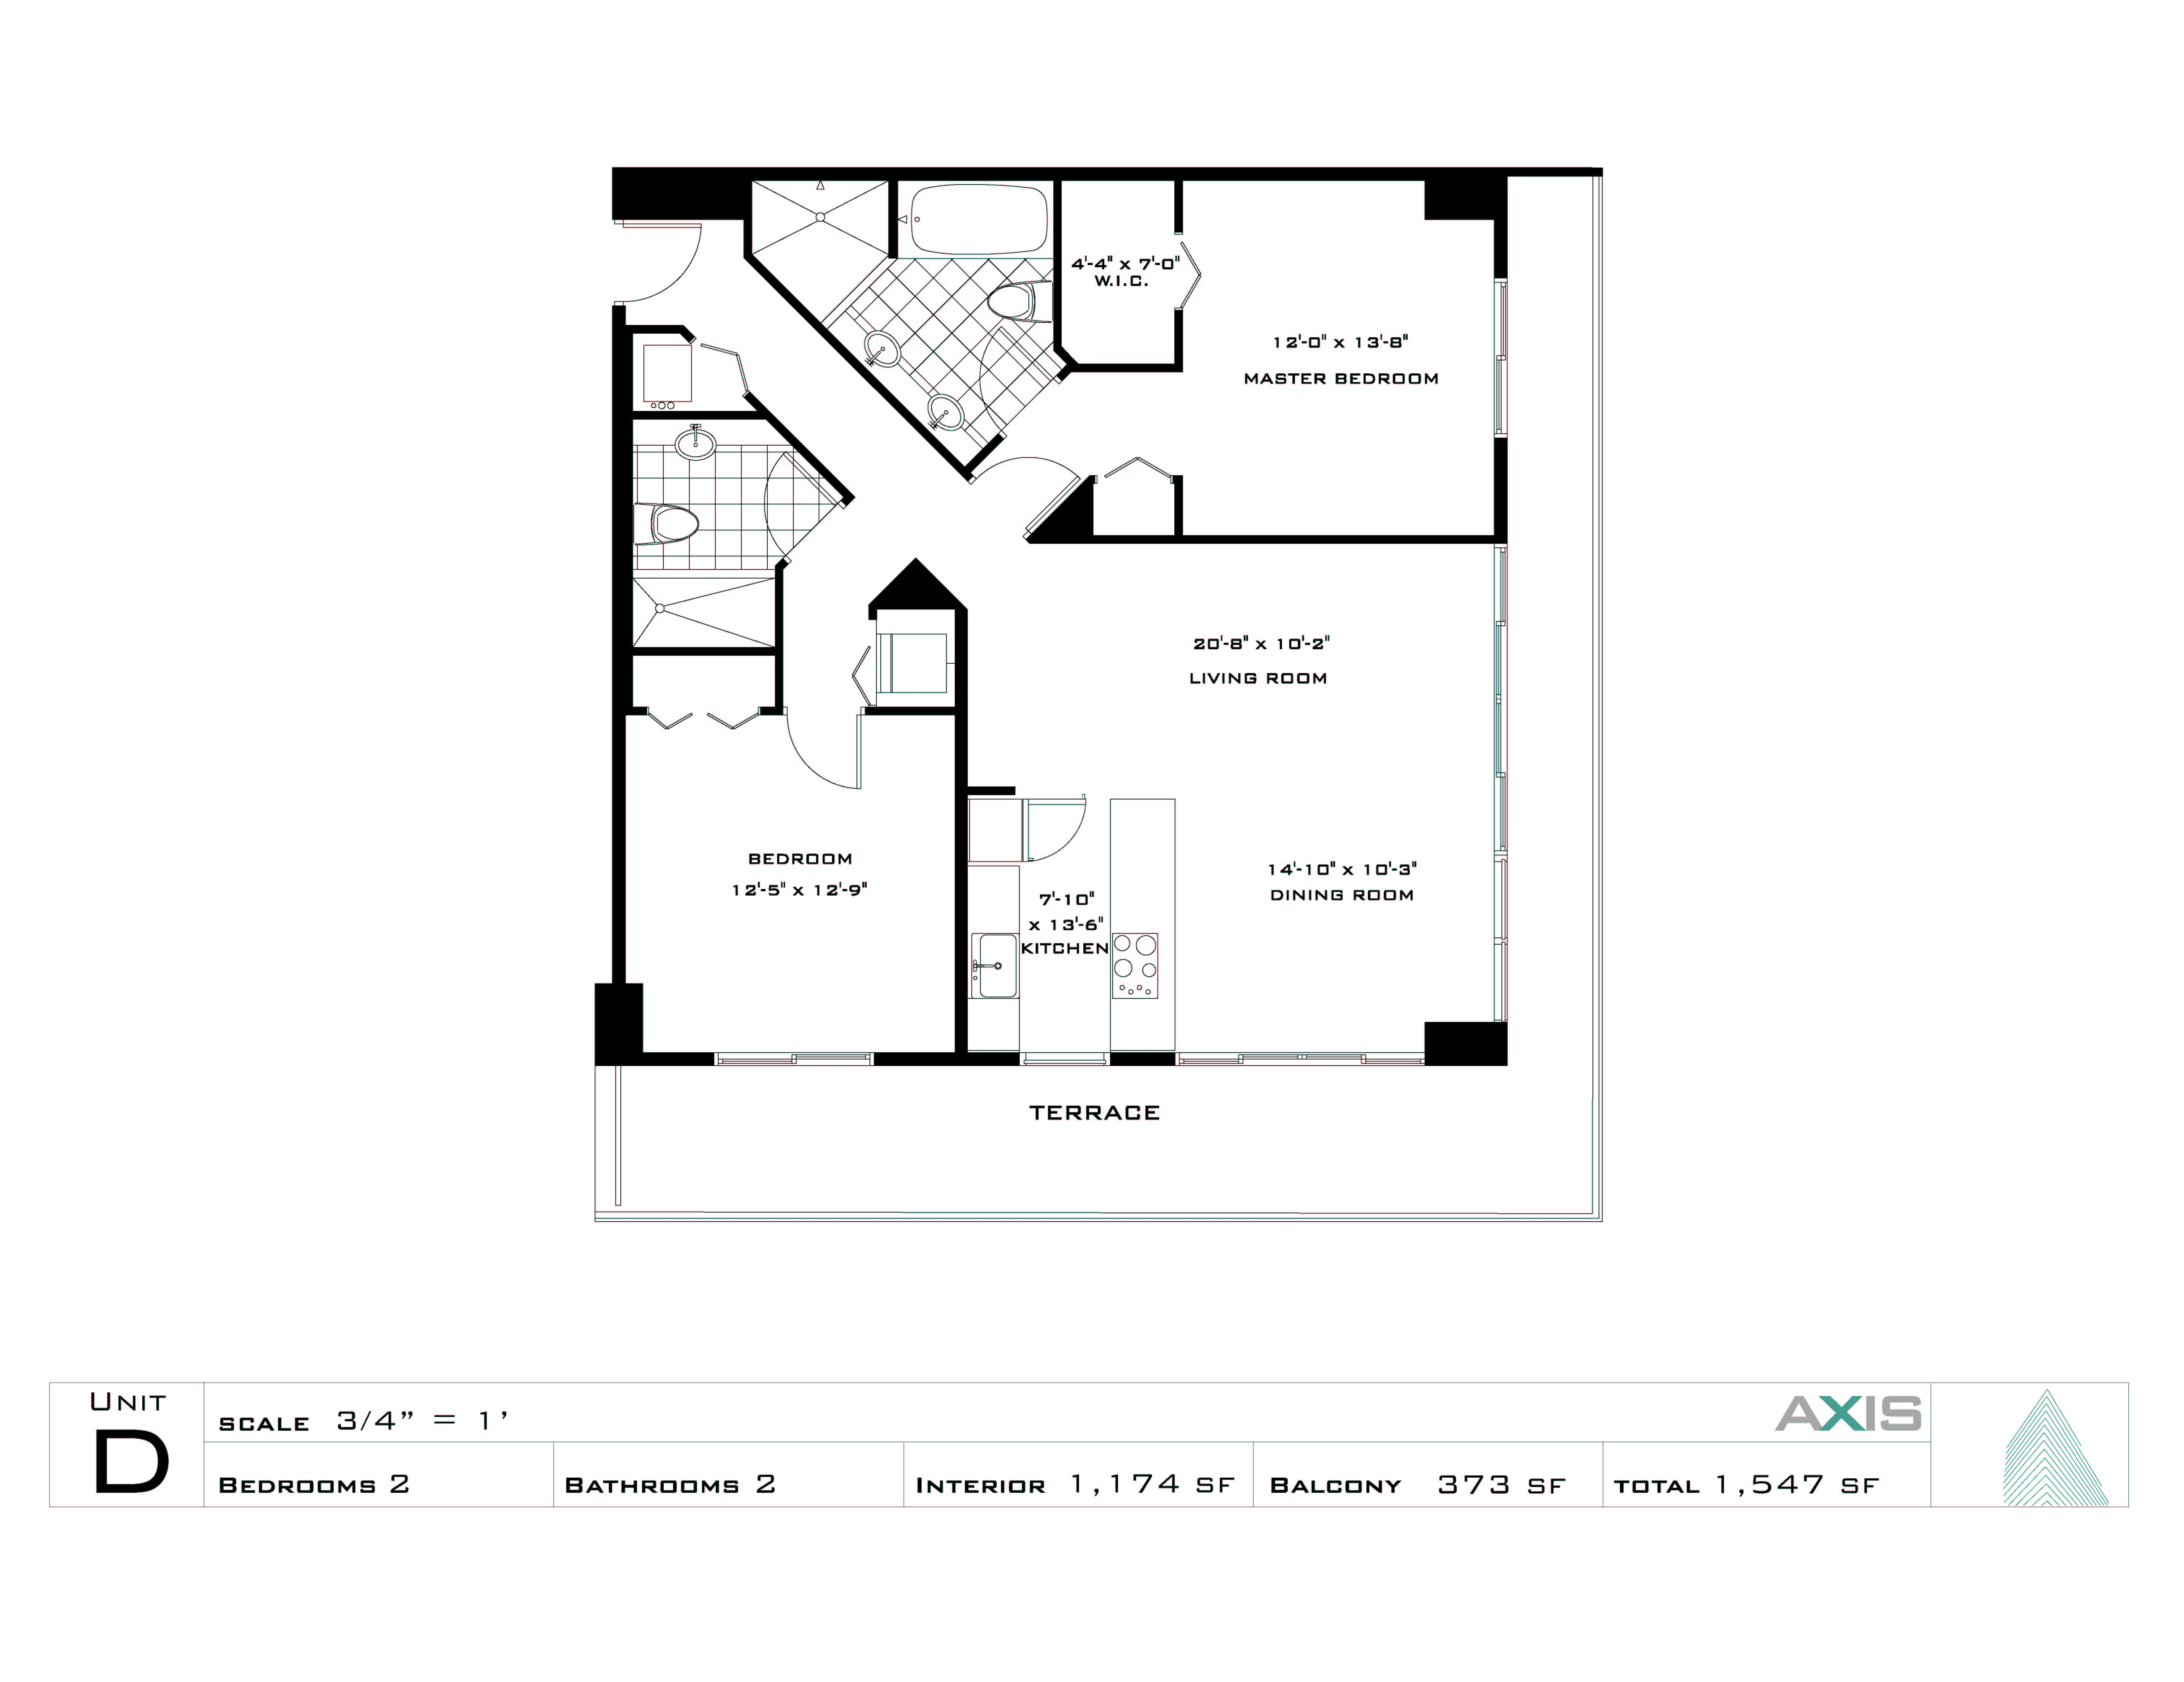 1060 brickell ave floor plans trend home design and decor floorplans 1060 brickell1060 brickell